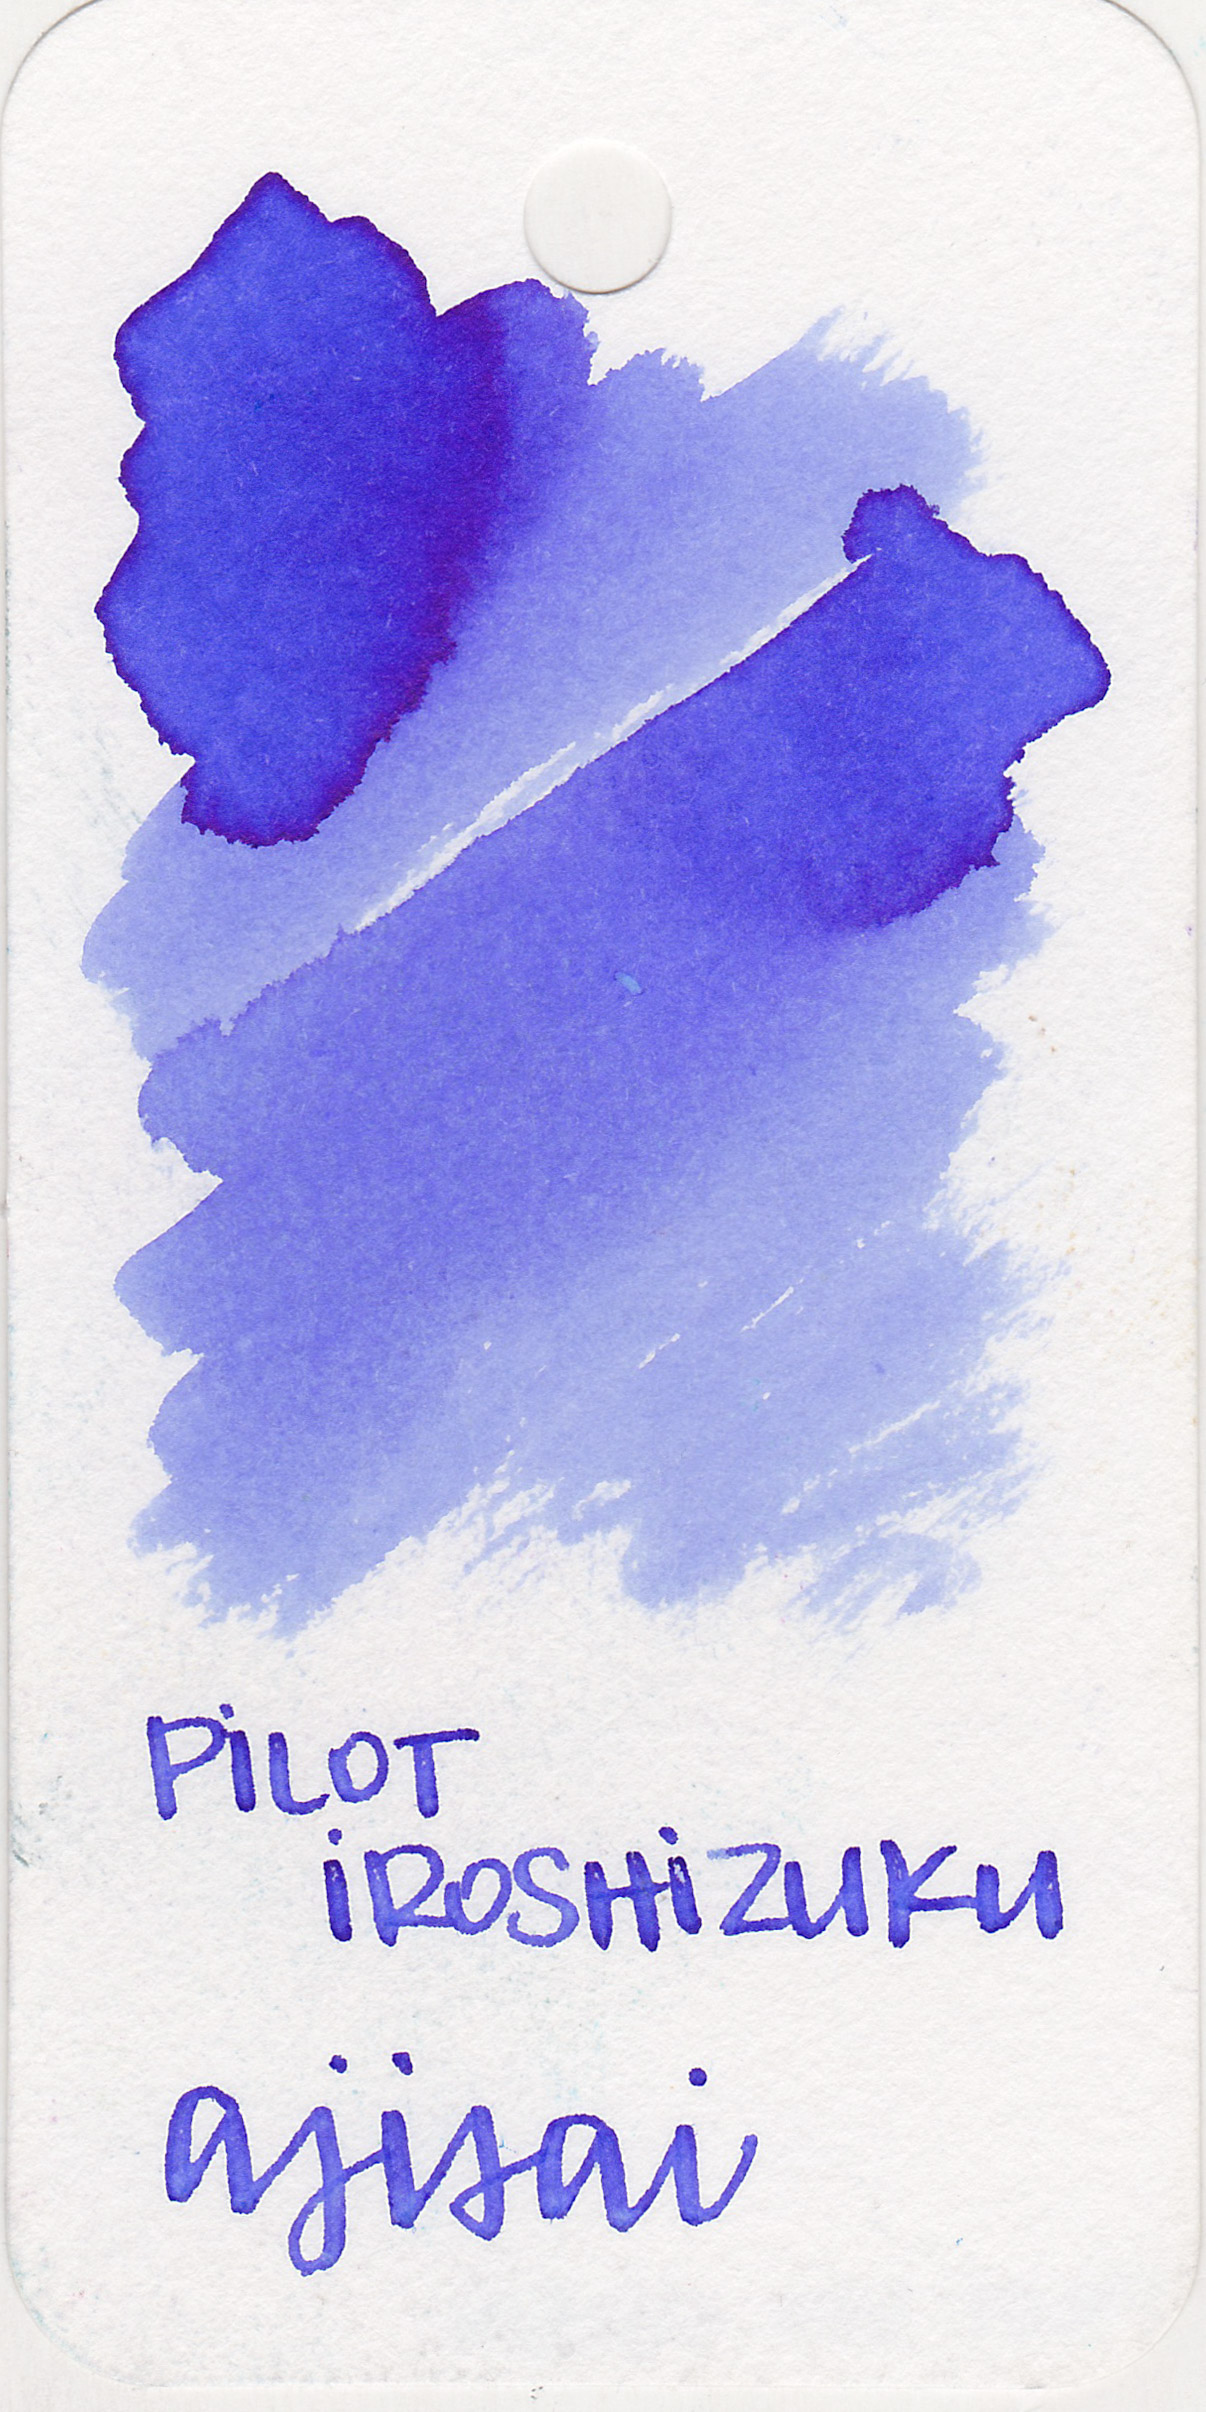 The color: - Ajisai is the perfect purple-blue as spring hydrangeas. It's a unique color, there aren't many inks this shade.